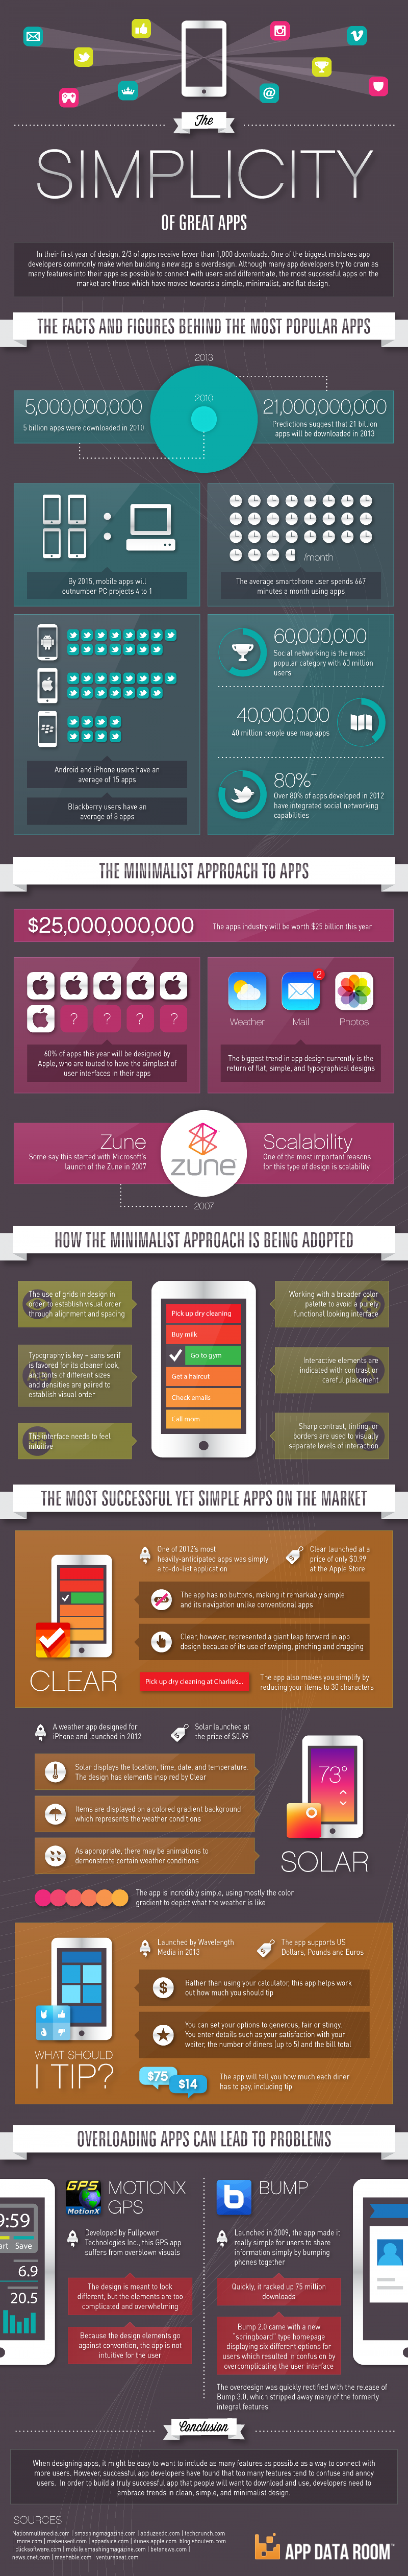 Simplicity of Great Apps Infographic